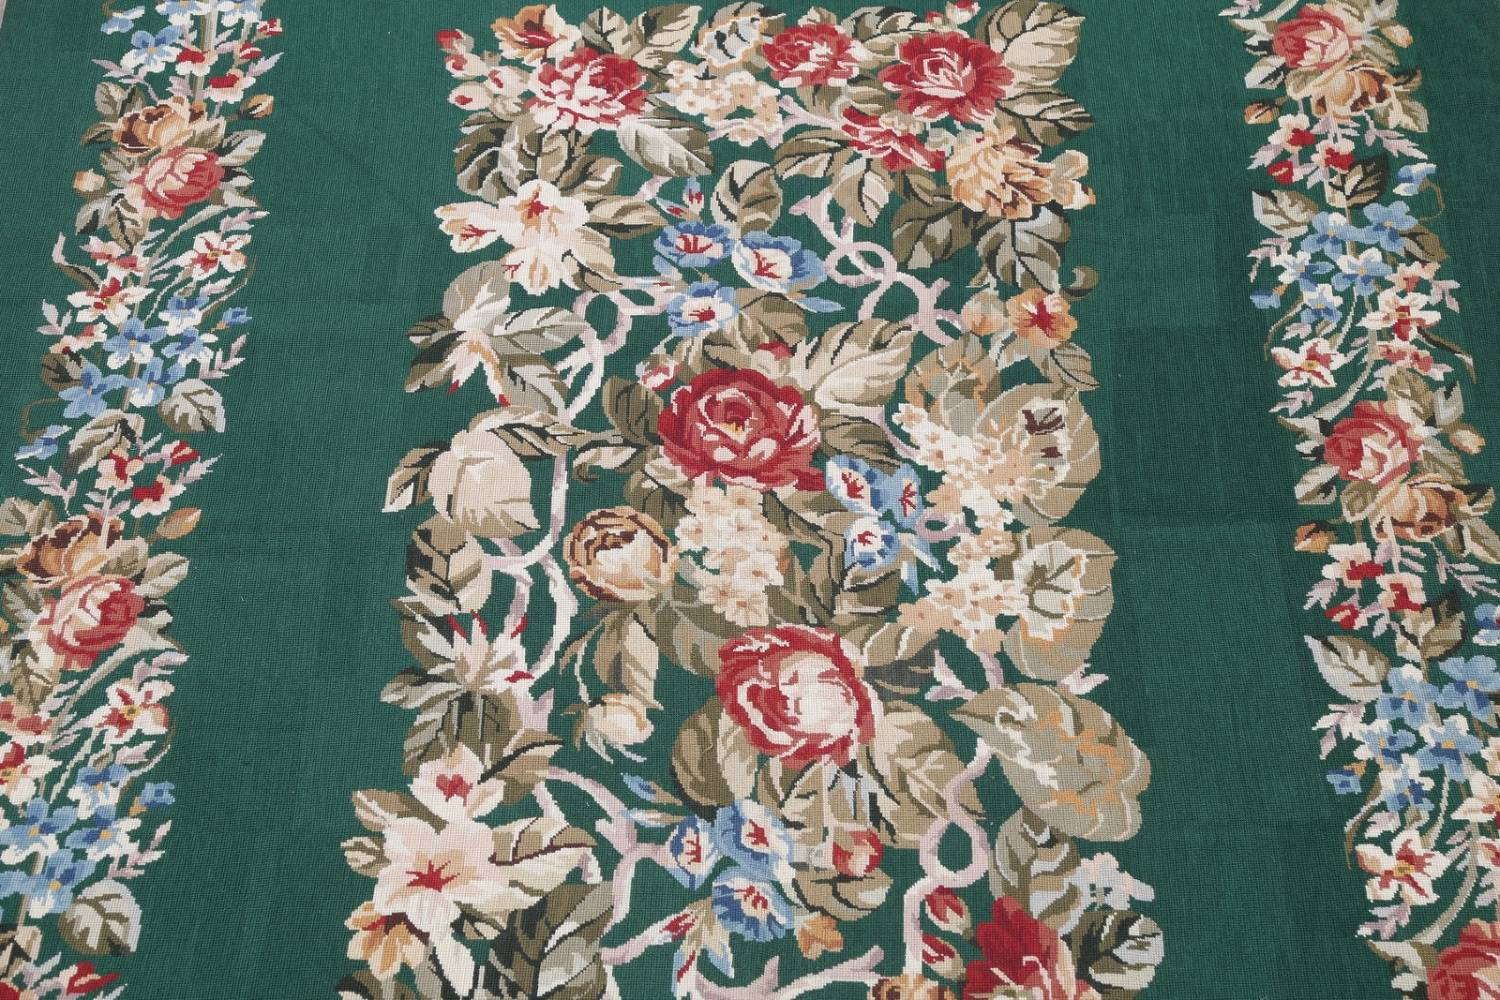 Floral Green Aubusson Chinese Oriental Hand-Woven Area Rug Wool 6x9 image 4